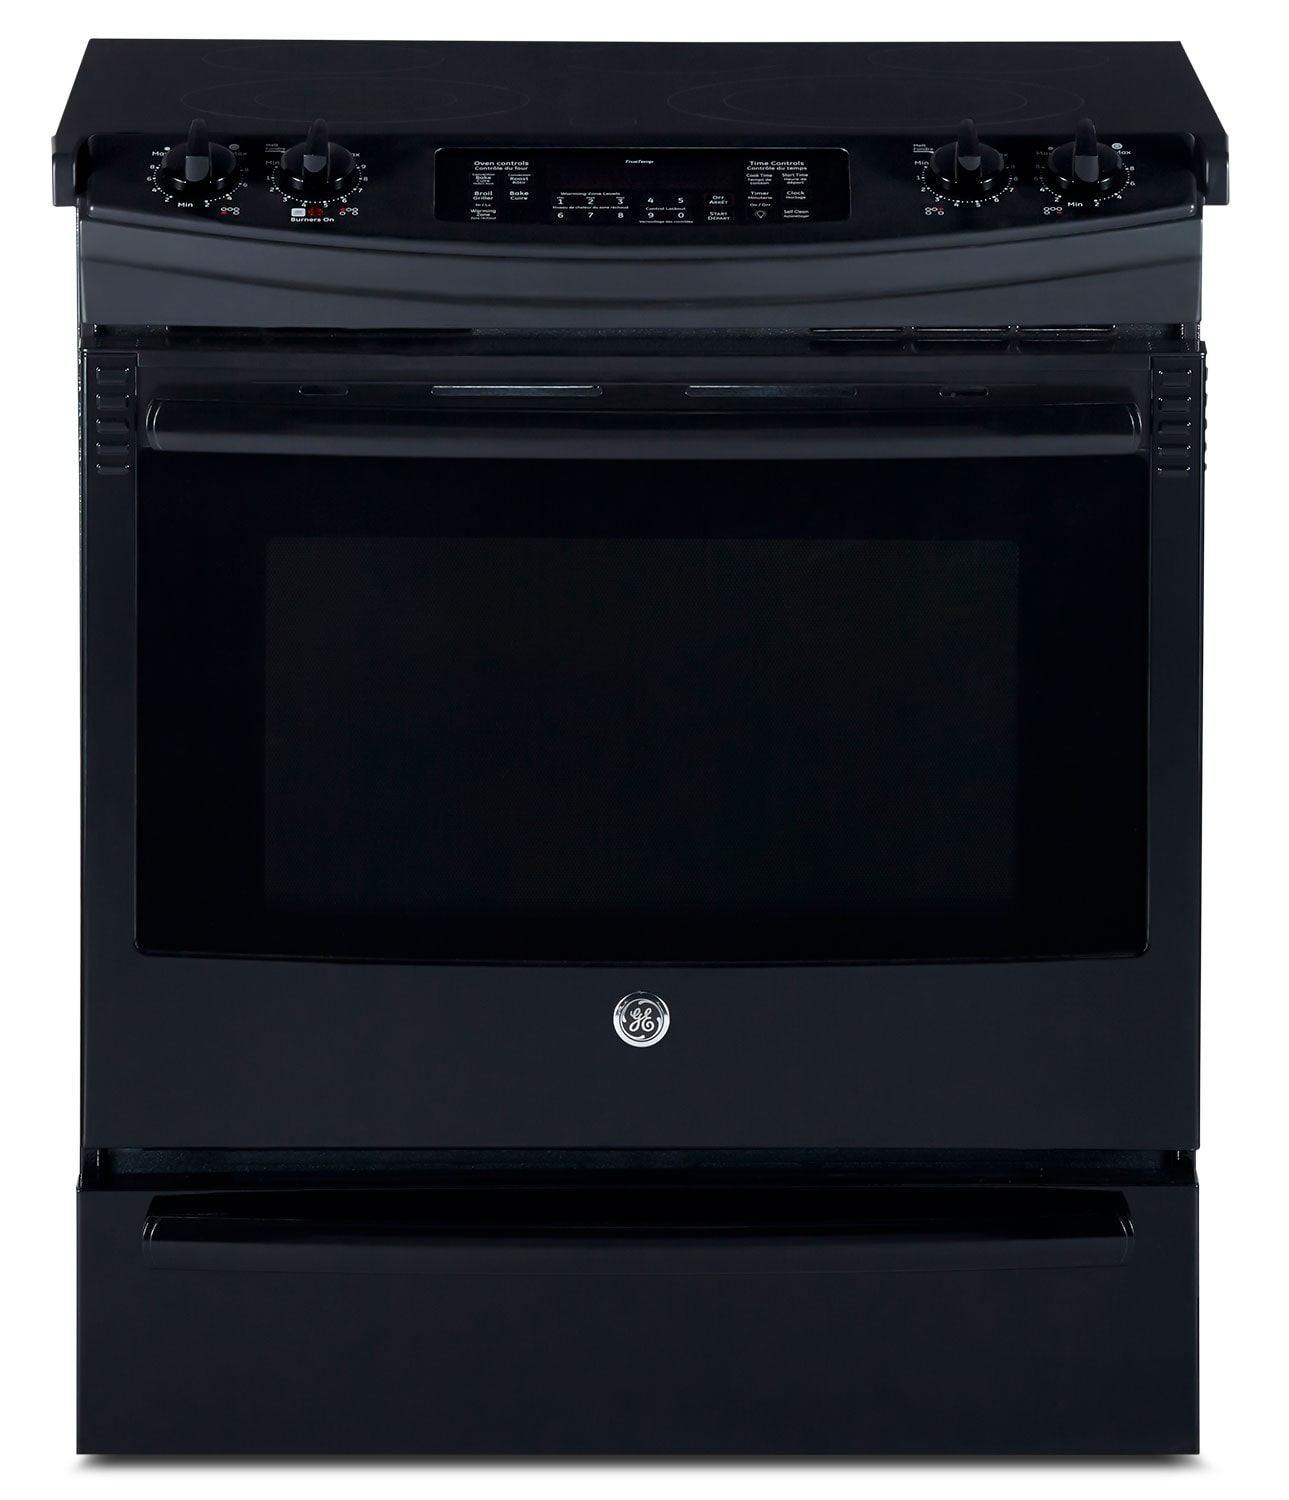 Cooking Products - GE Black Slide-In Electric Convection Range (5.2 Cu. Ft.) - JCS860DFBB